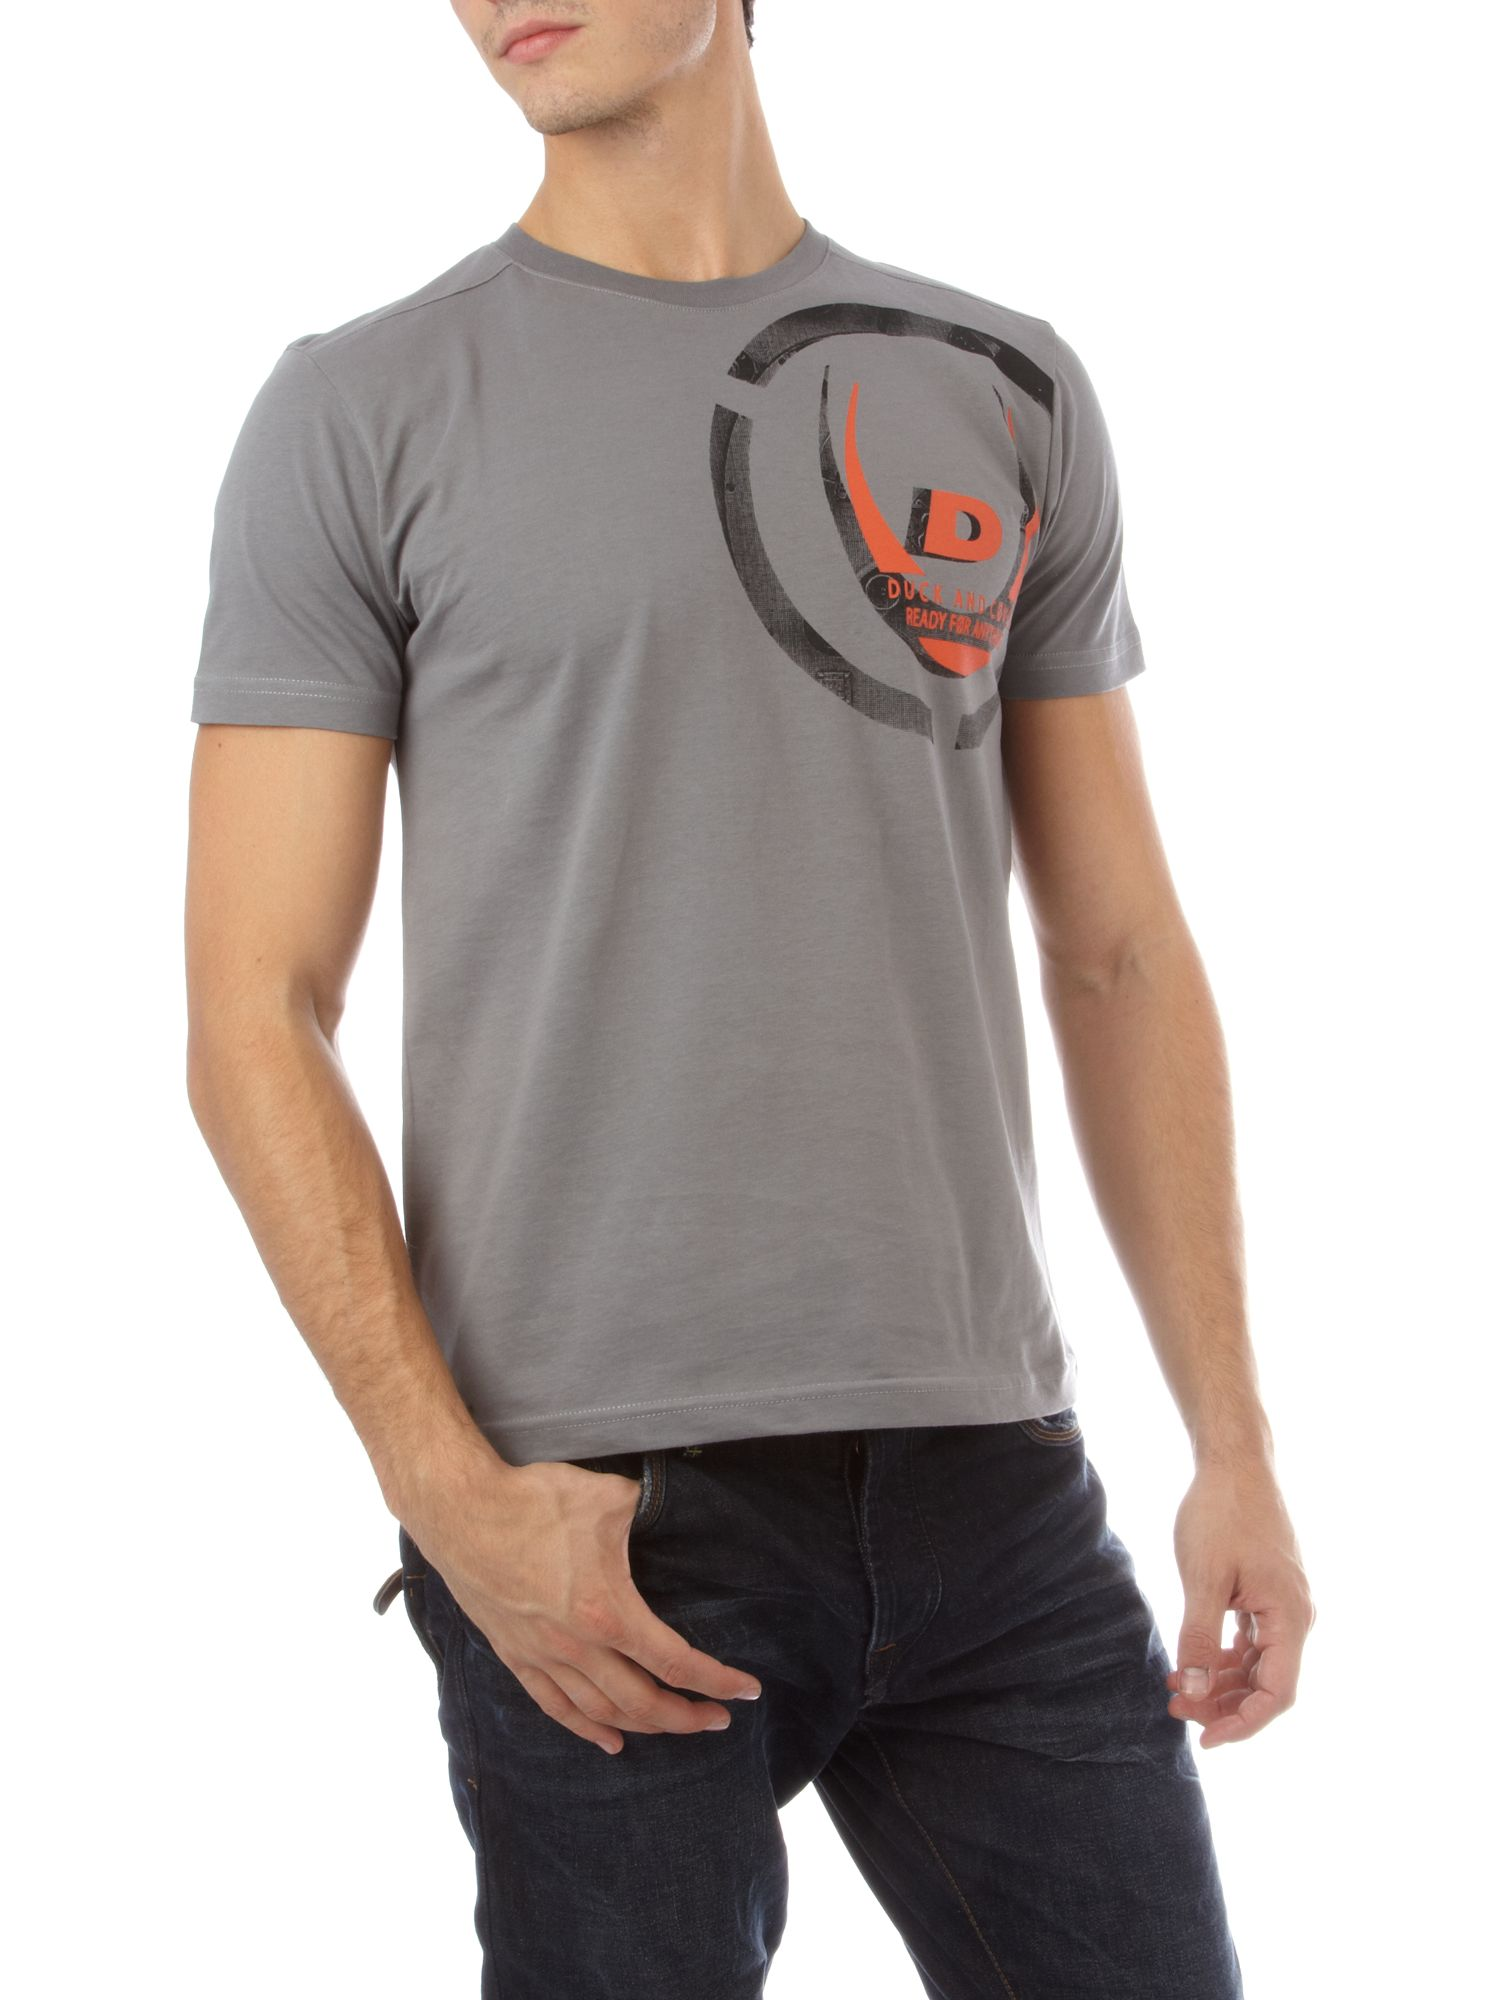 Duck and Cover Multi colour shoulder T-shirt - Slate L product image